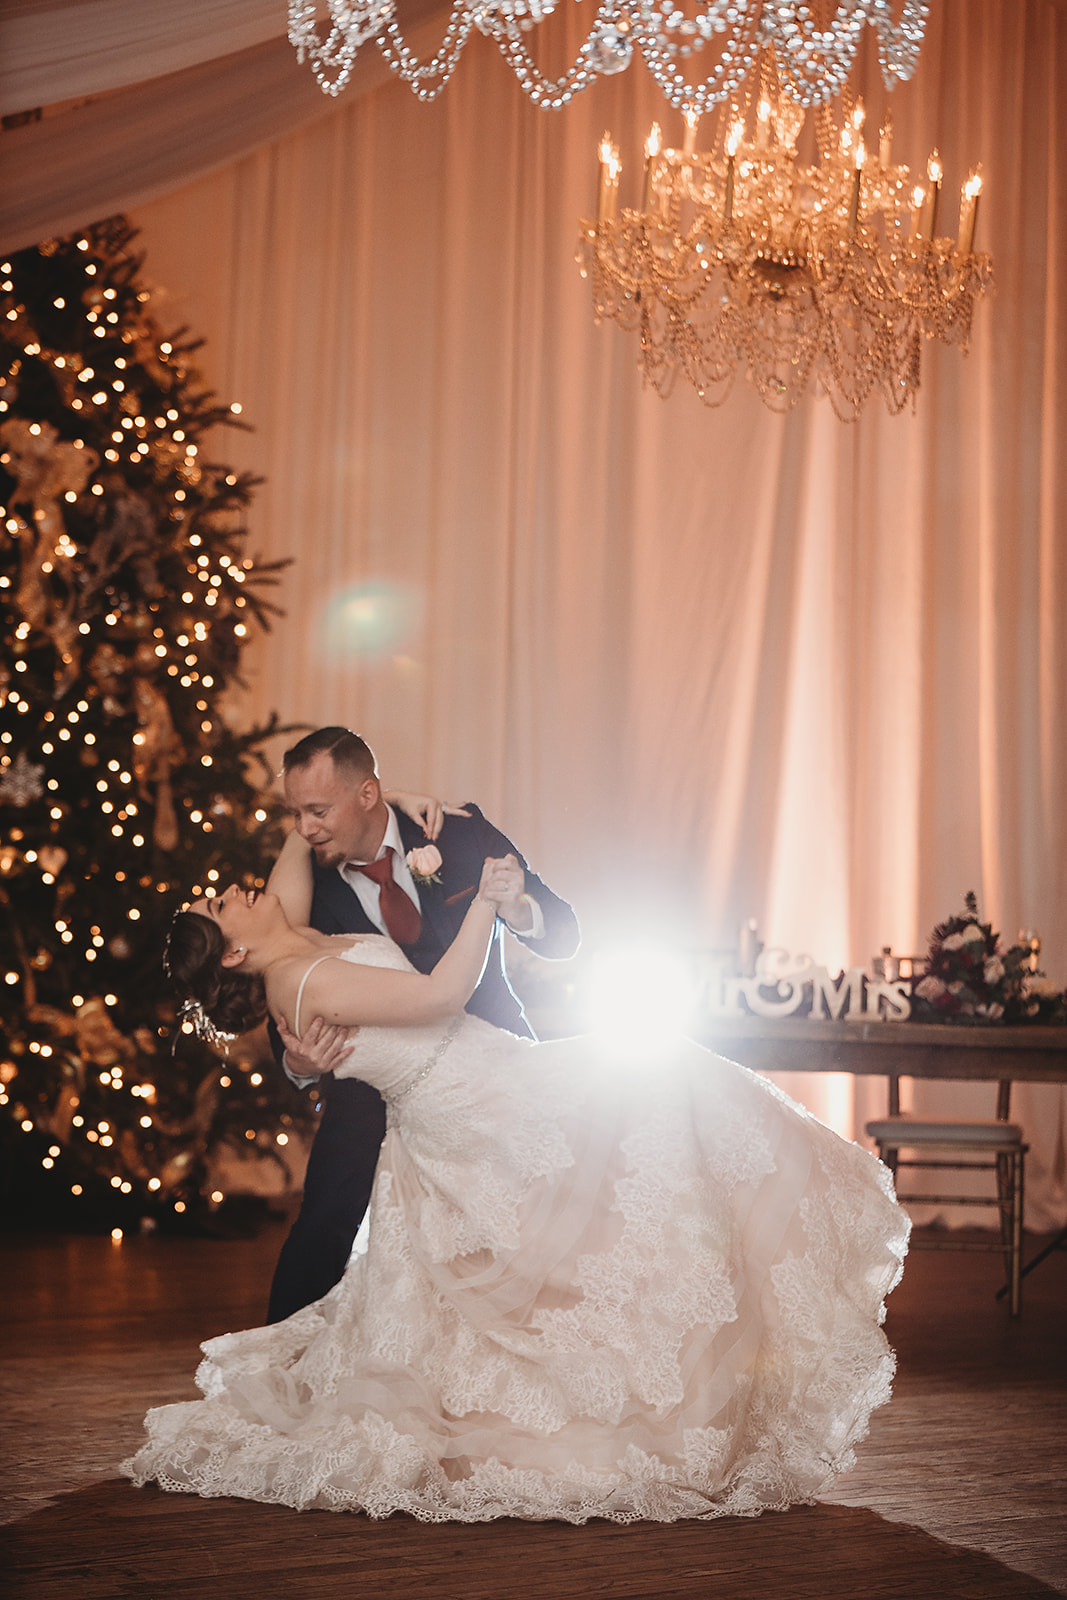 bride and groom dancing in ballroom